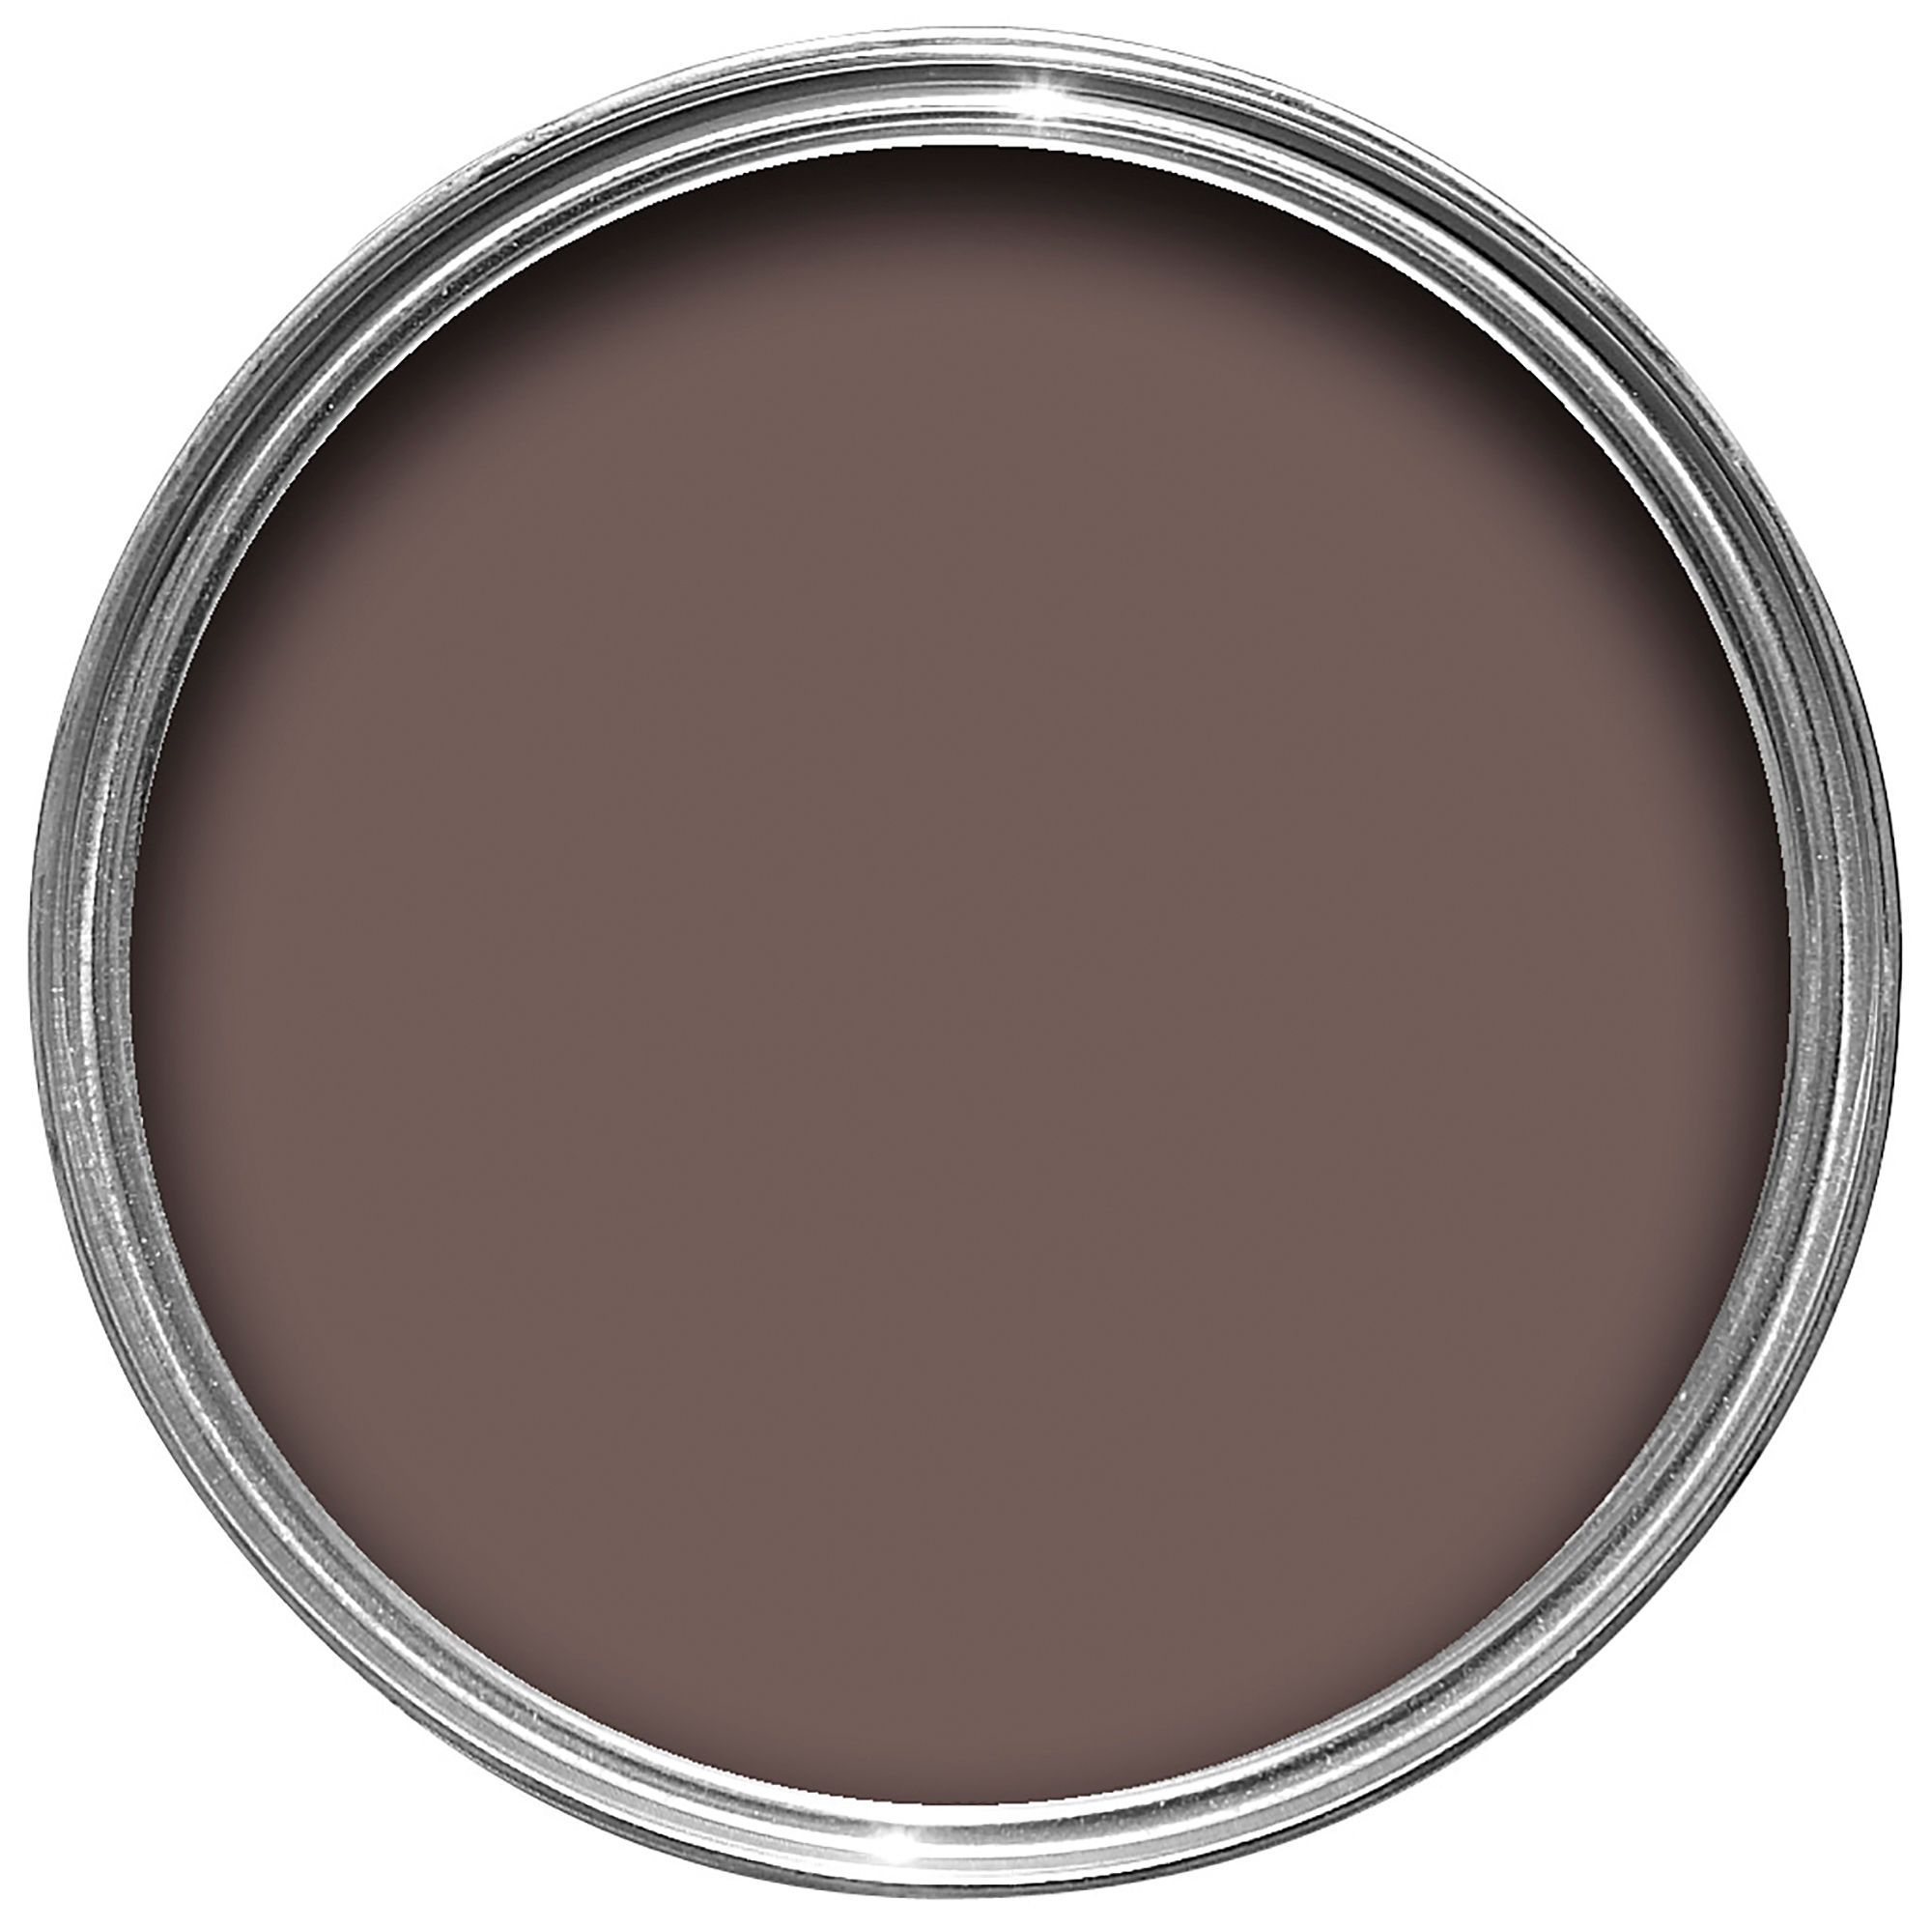 Colours interior exterior cocoa bean gloss wood metal paint 750ml departments diy at b q - Exterior wood paint matt pict ...